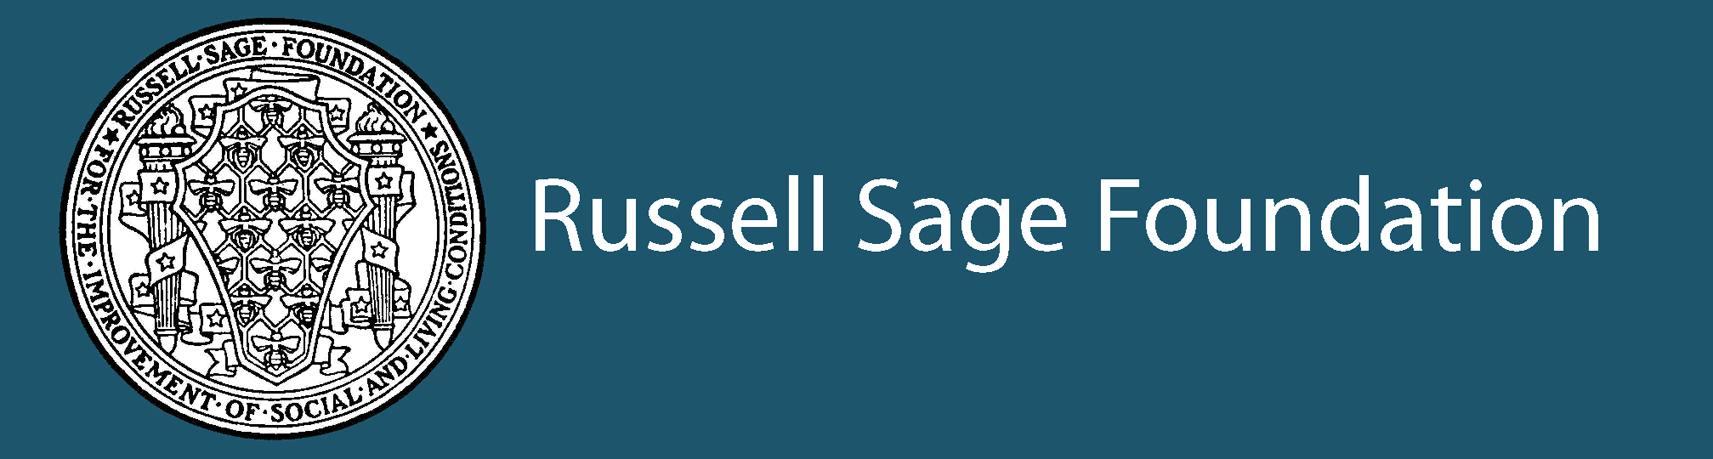 Russell-Sage-Foundation-Logo